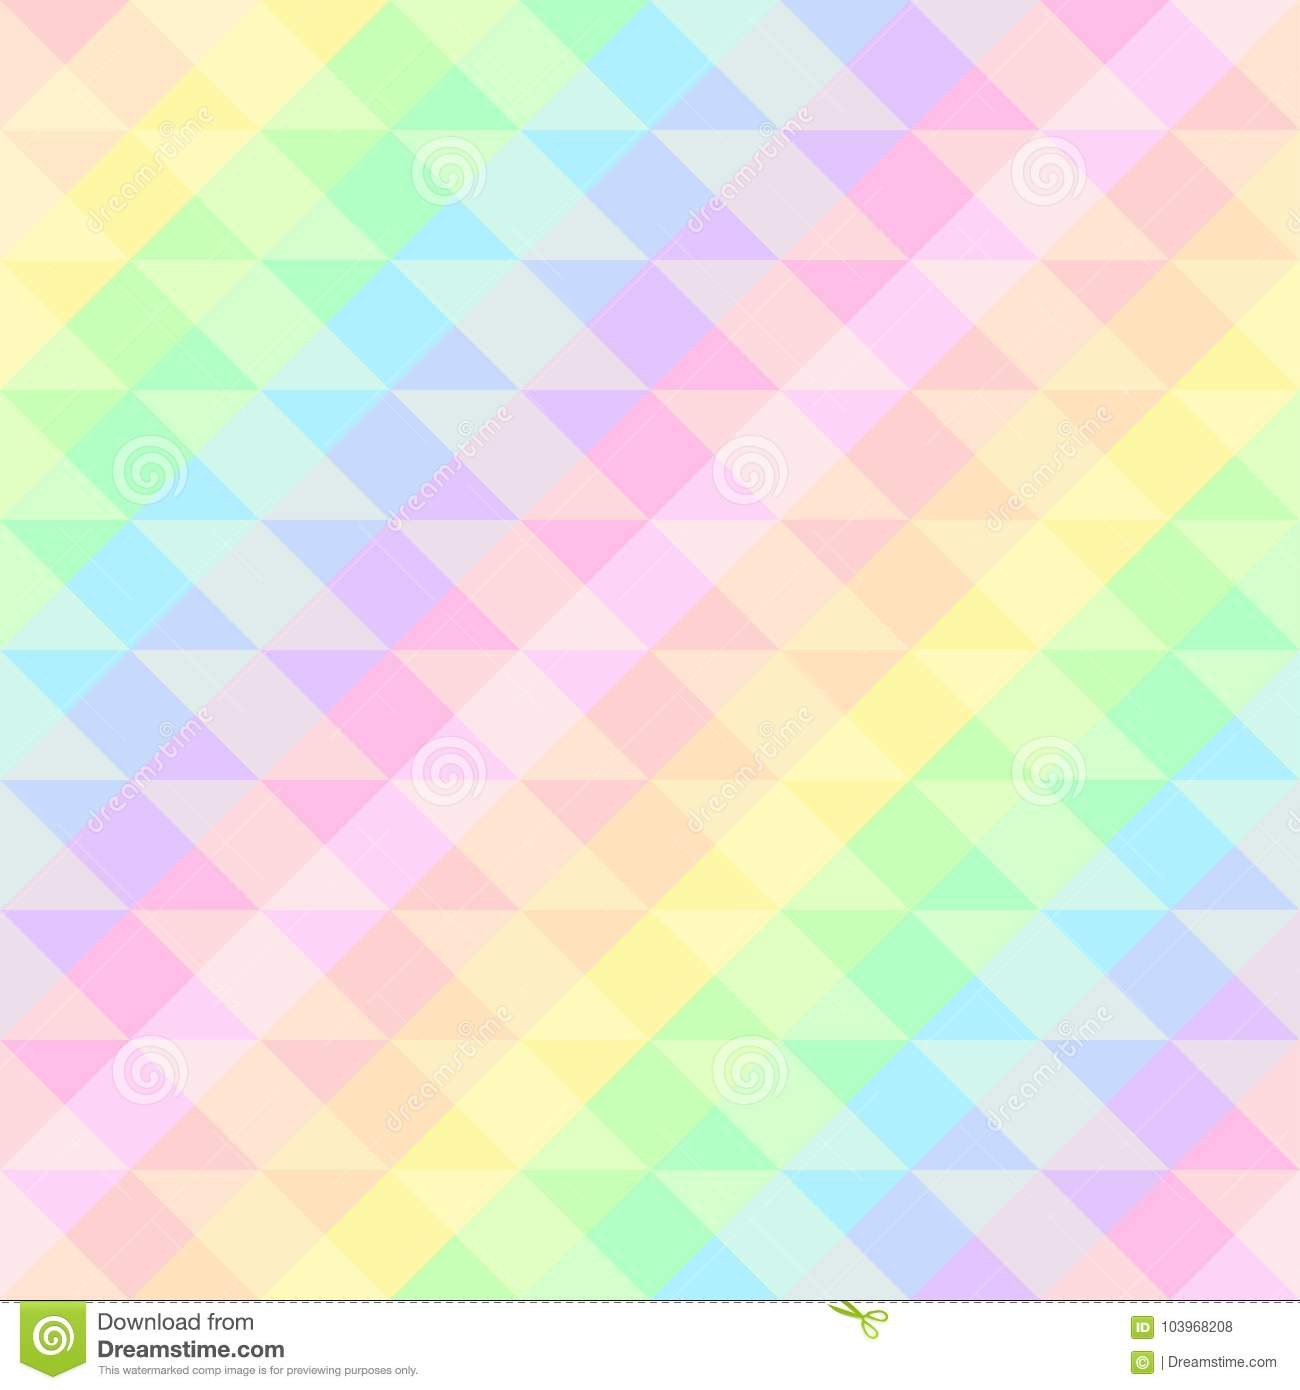 Seamless Bright Festive Pattern Of Iridescent Diagonal And